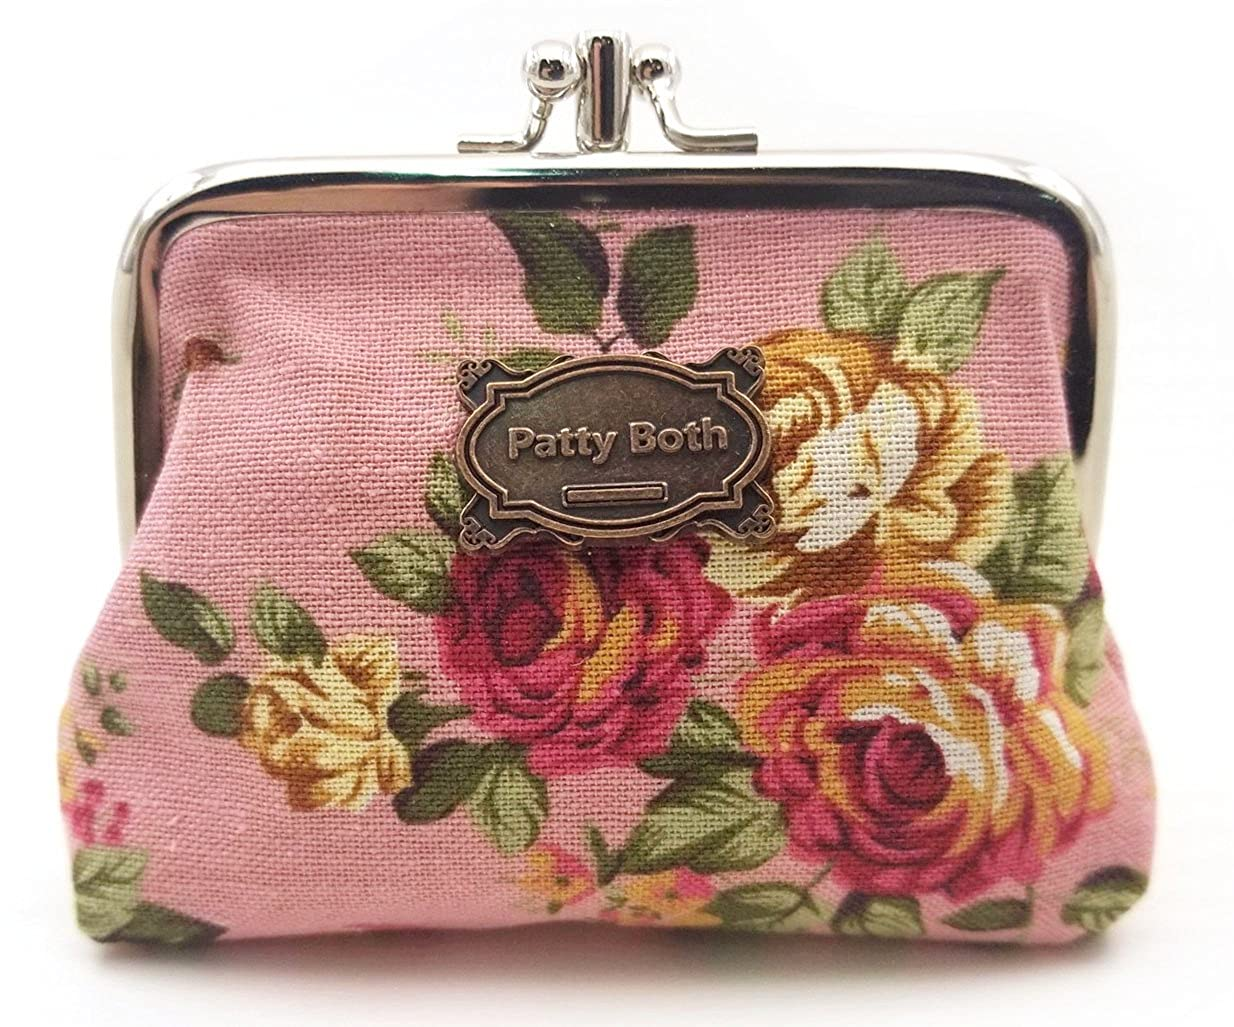 Patty Both Cute Classic Floral Exquisite Buckle Coin Purse bag-Black 02